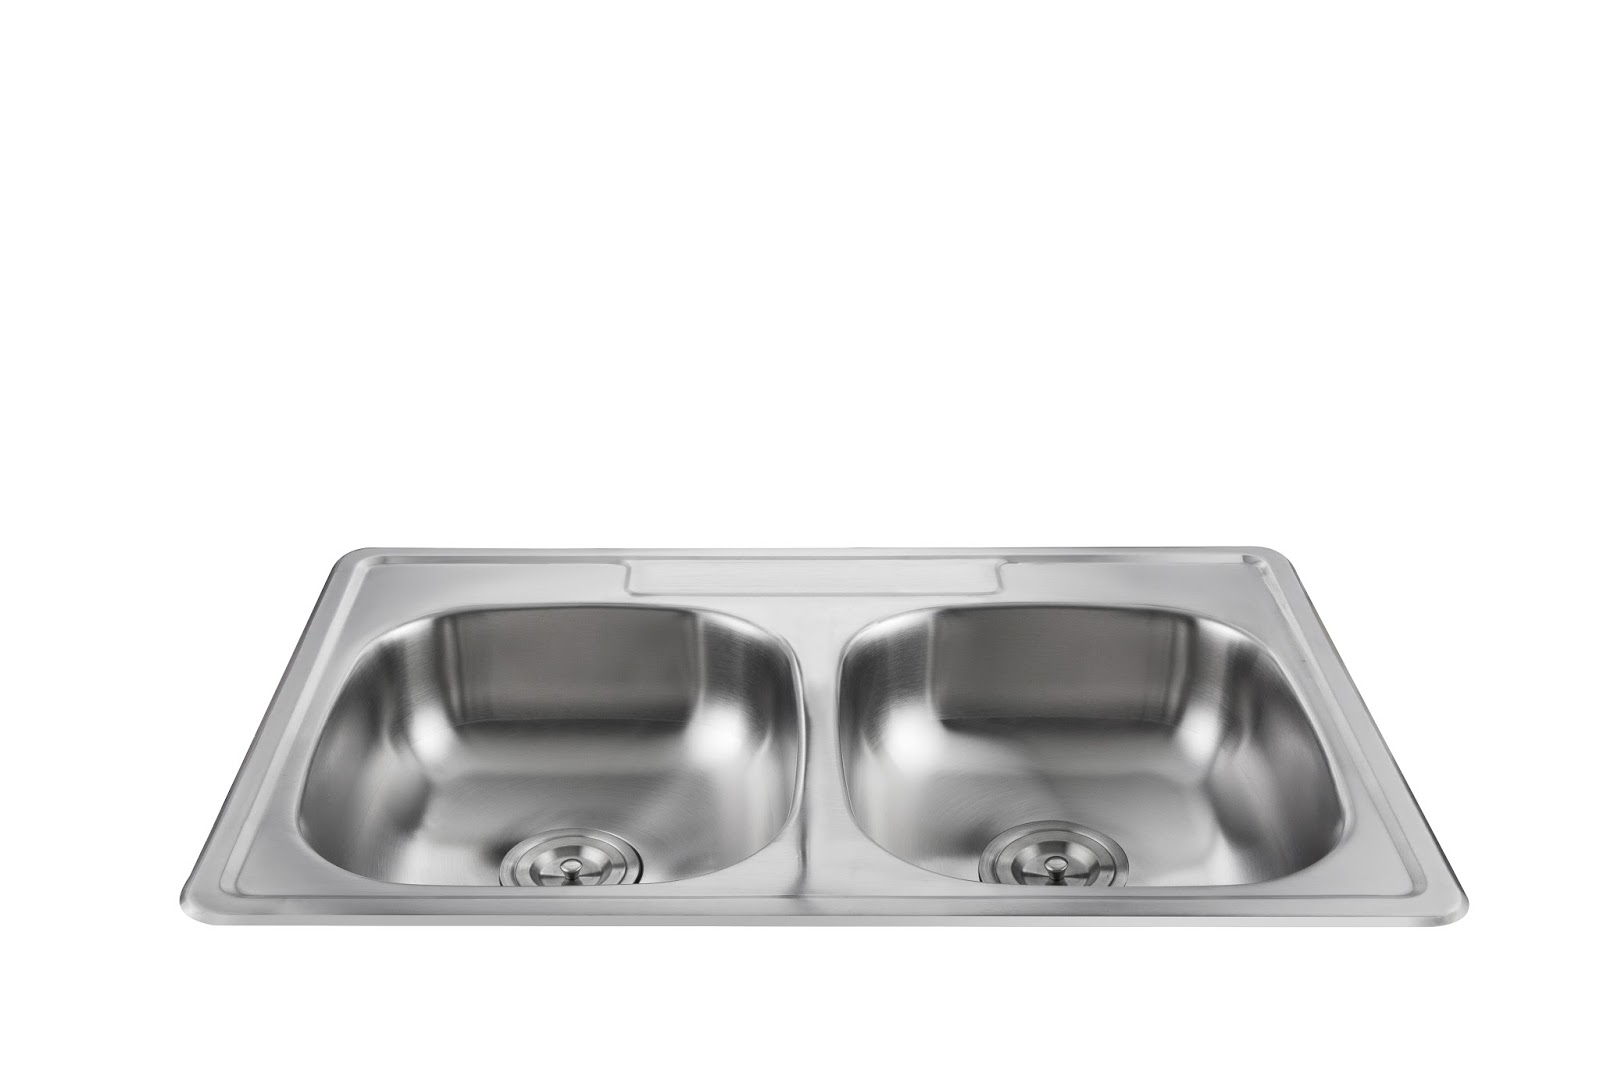 Stainless Steel Kitchen Sink Manufacturer: China Stainless Steel ...